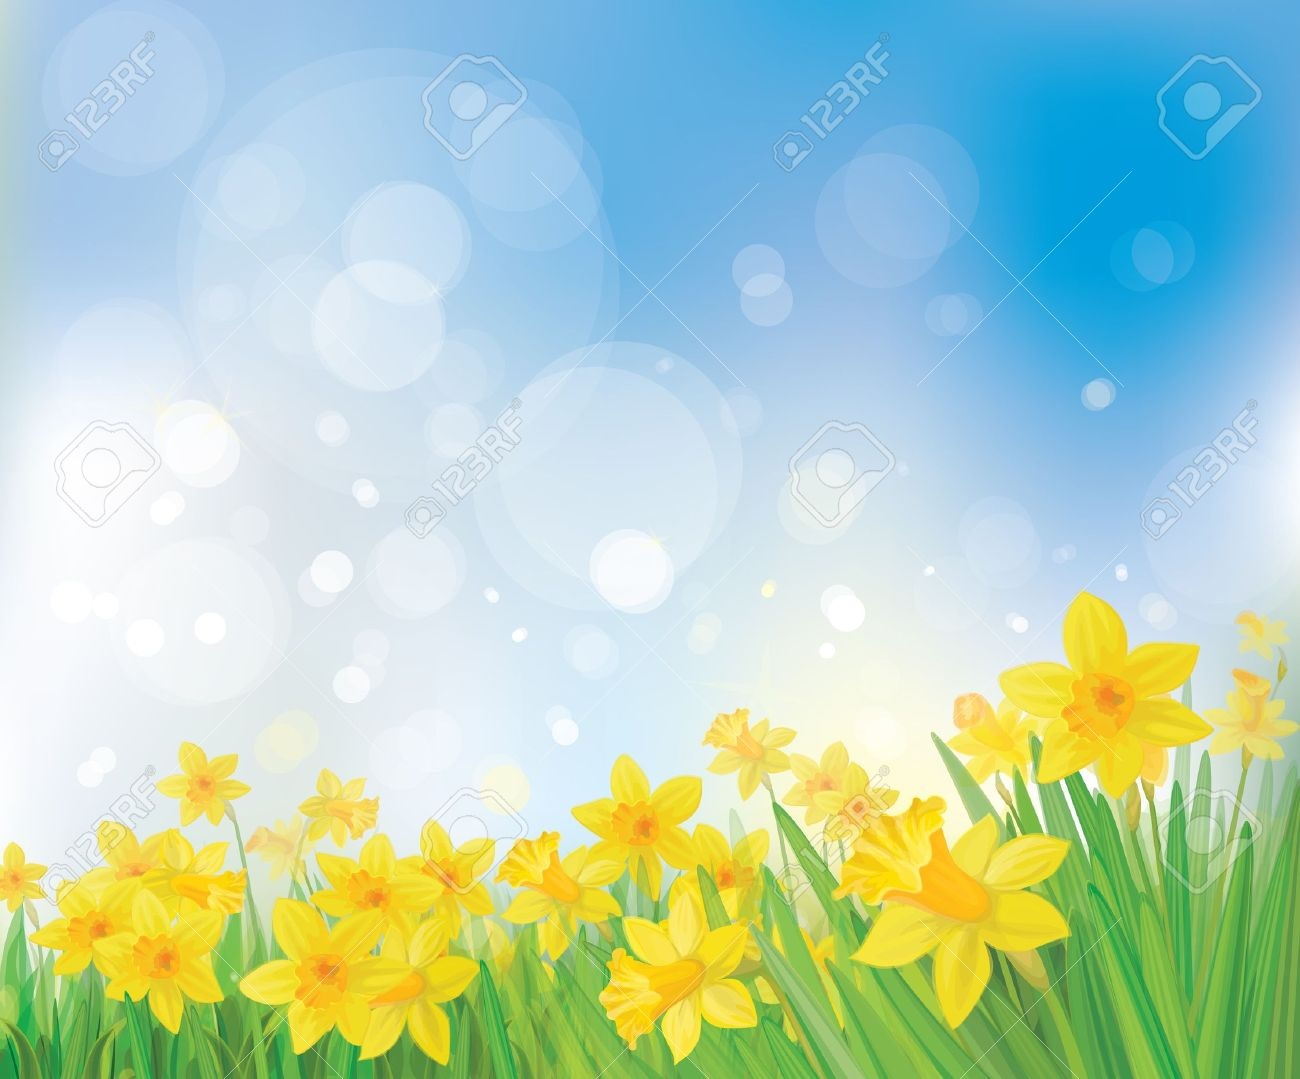 Spring background clipart 2 » Clipart Station.